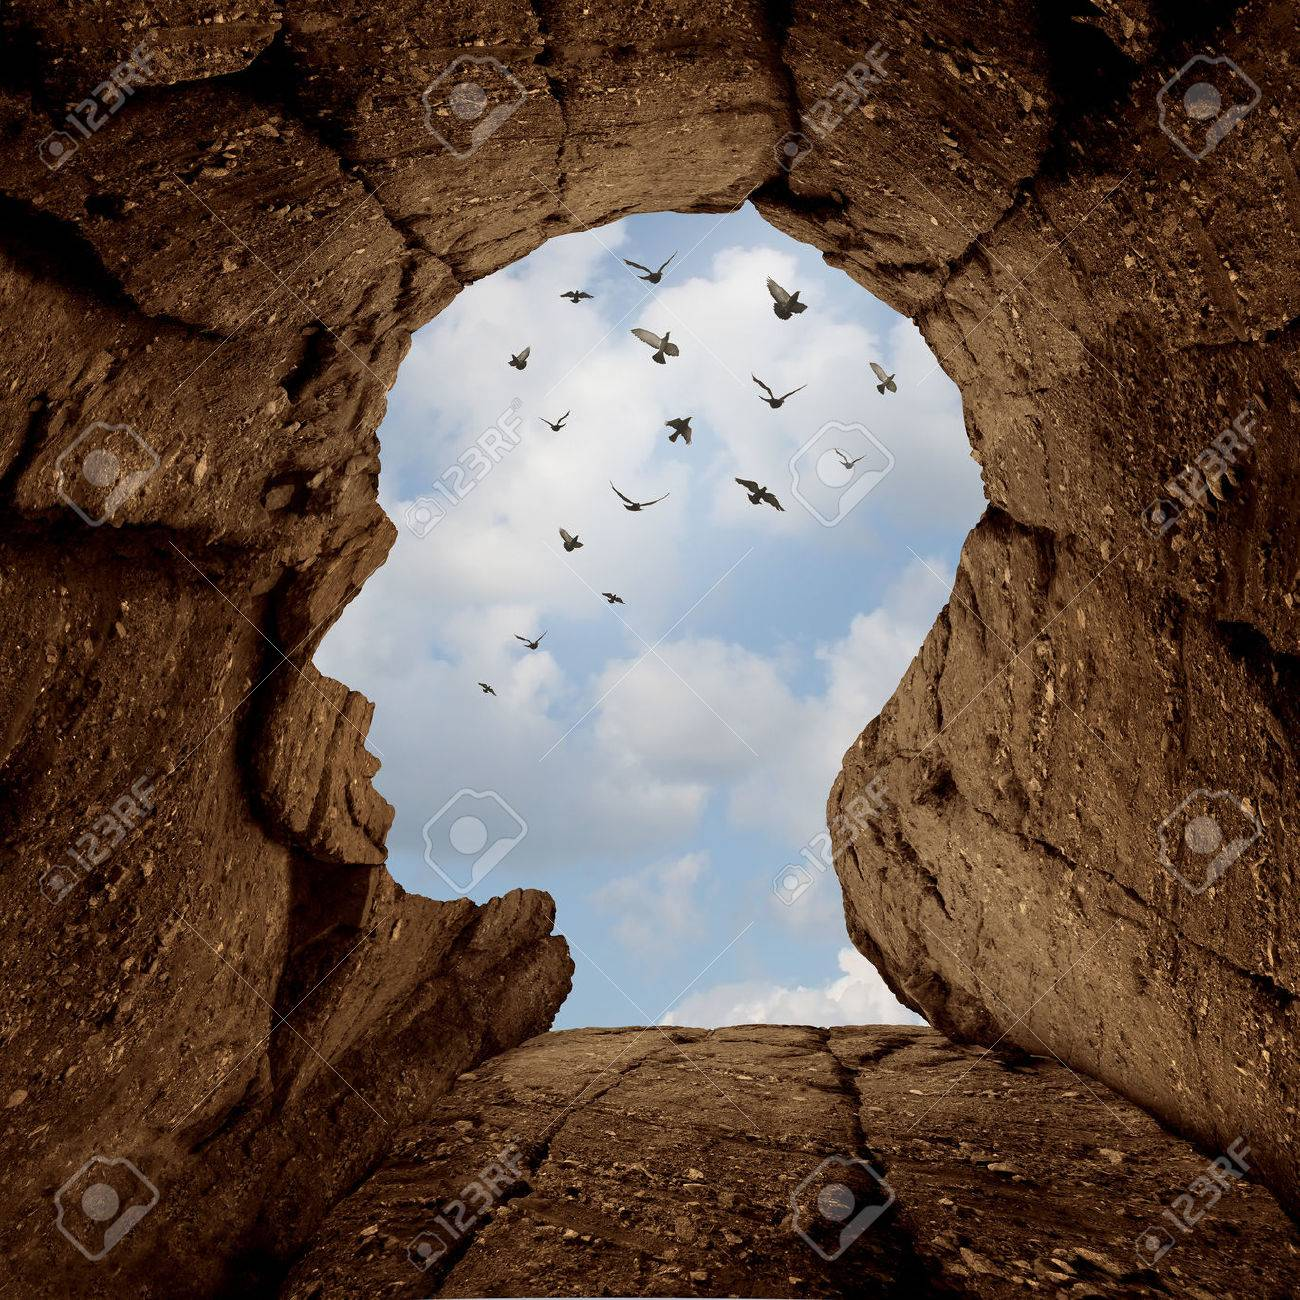 Imagination and discovery concept as a rocky cliff with an opening on top shaped as a human head as a new life metaphor and success motivation symbol with a group of birds flying high in the sky. - 49008348